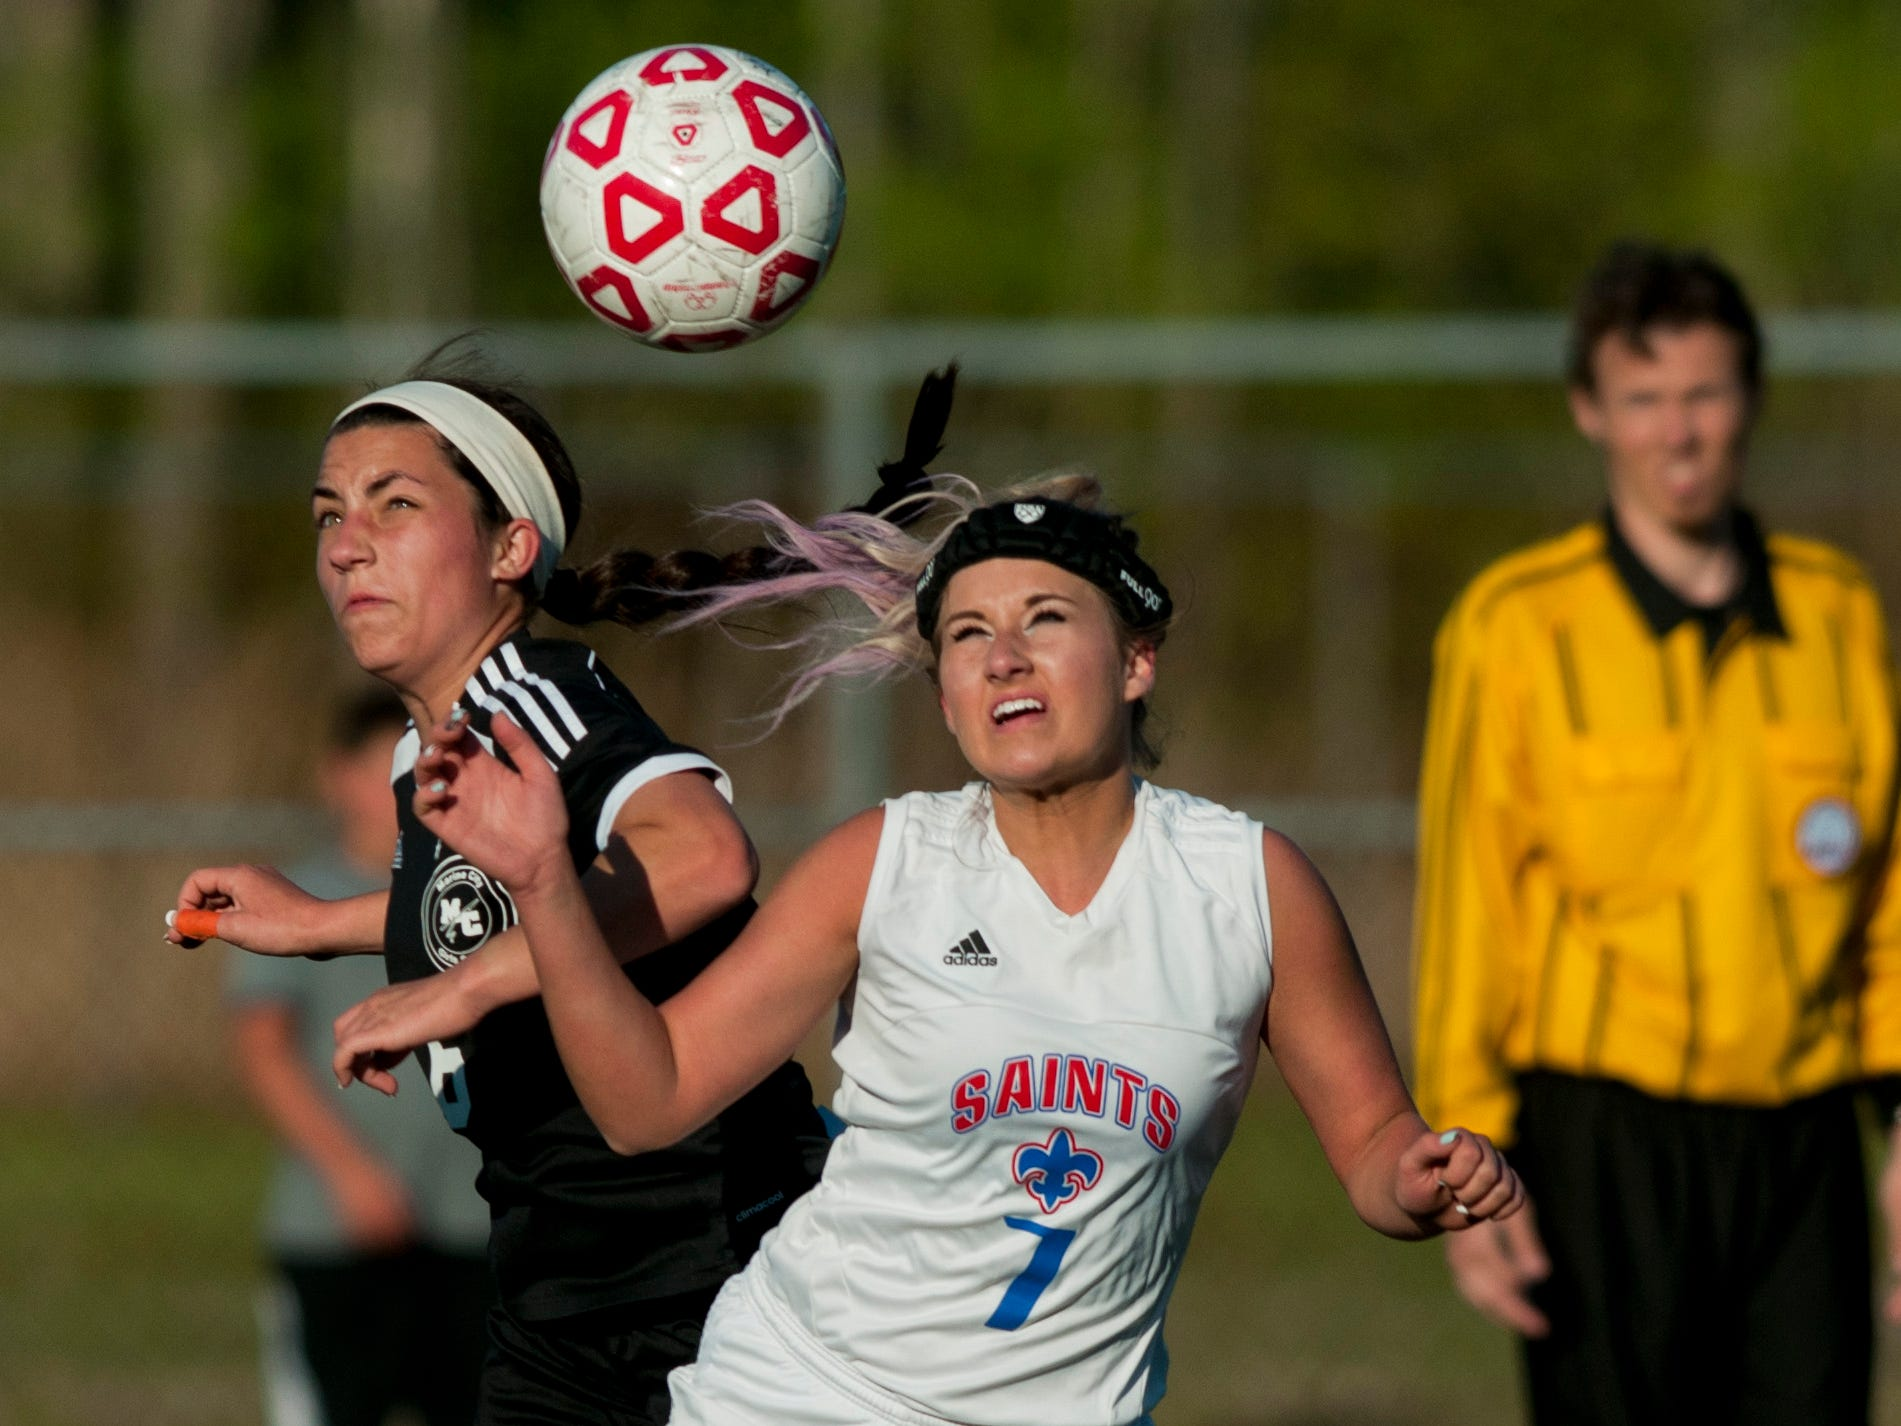 Marine City senior Olivia Viney and St. Clair senior Laura Bluhm attempt to head the ball during a soccer same Wednesday, May 13, 2015 at East China Stadium.